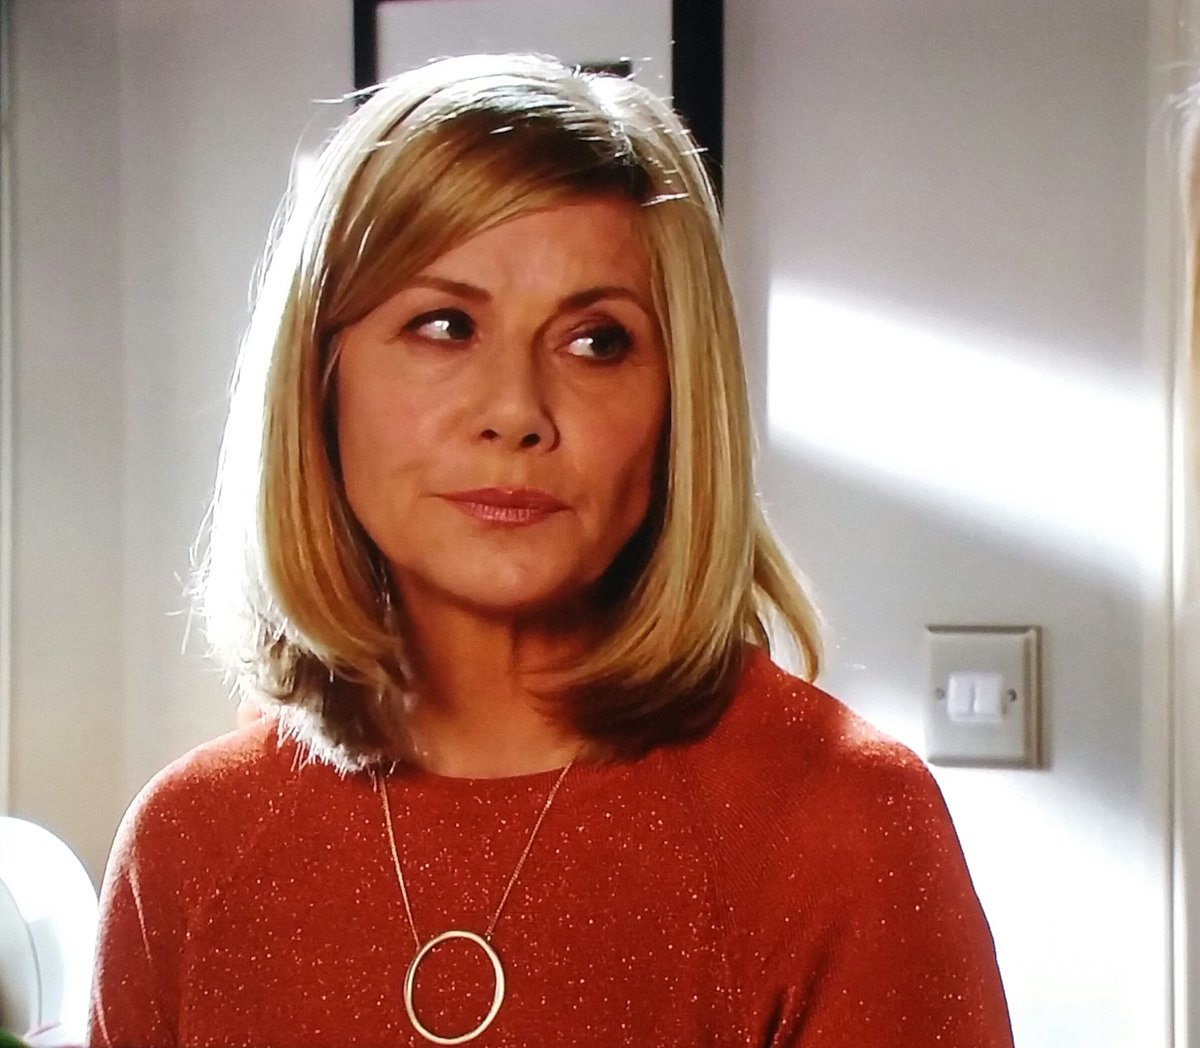 It's getting good @MsGlynisBarber shame it's such a short visit @bbceastenders #Glenda #Eastenders https://t.co/odpWNRe2vq